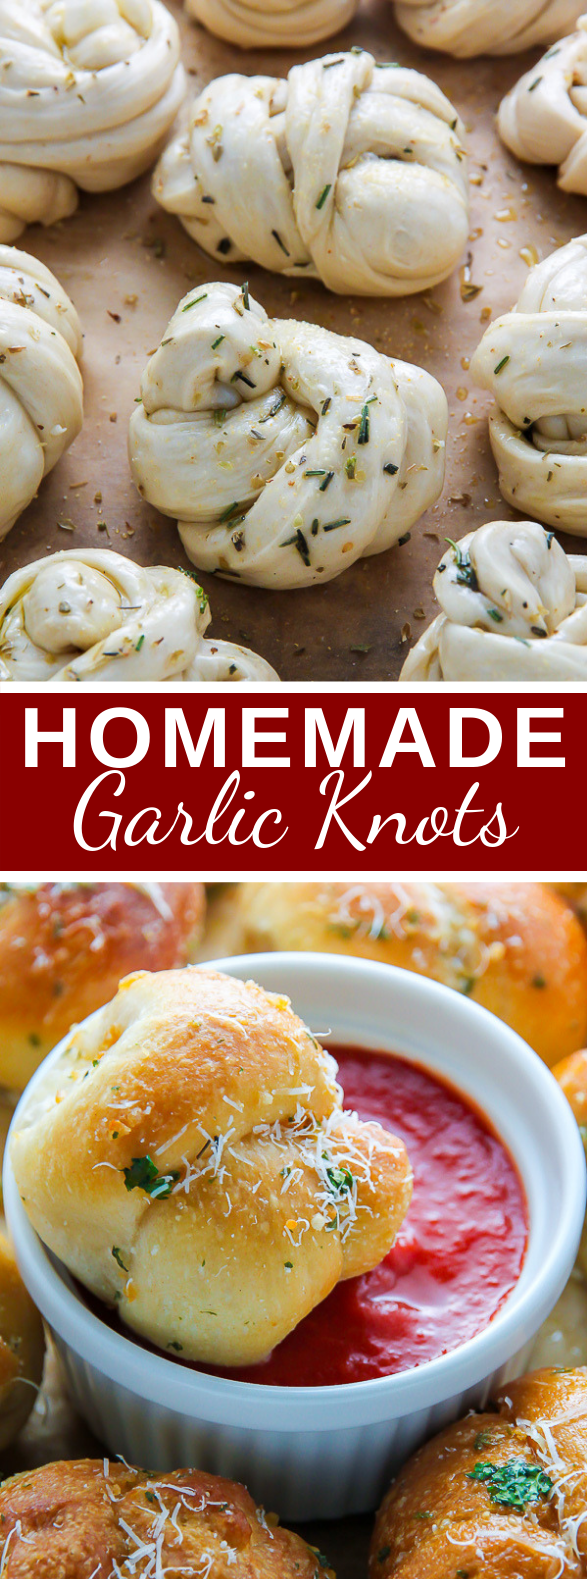 Homemade Garlic Knots #appetizers #lunch #dinner #meals #comfortfood